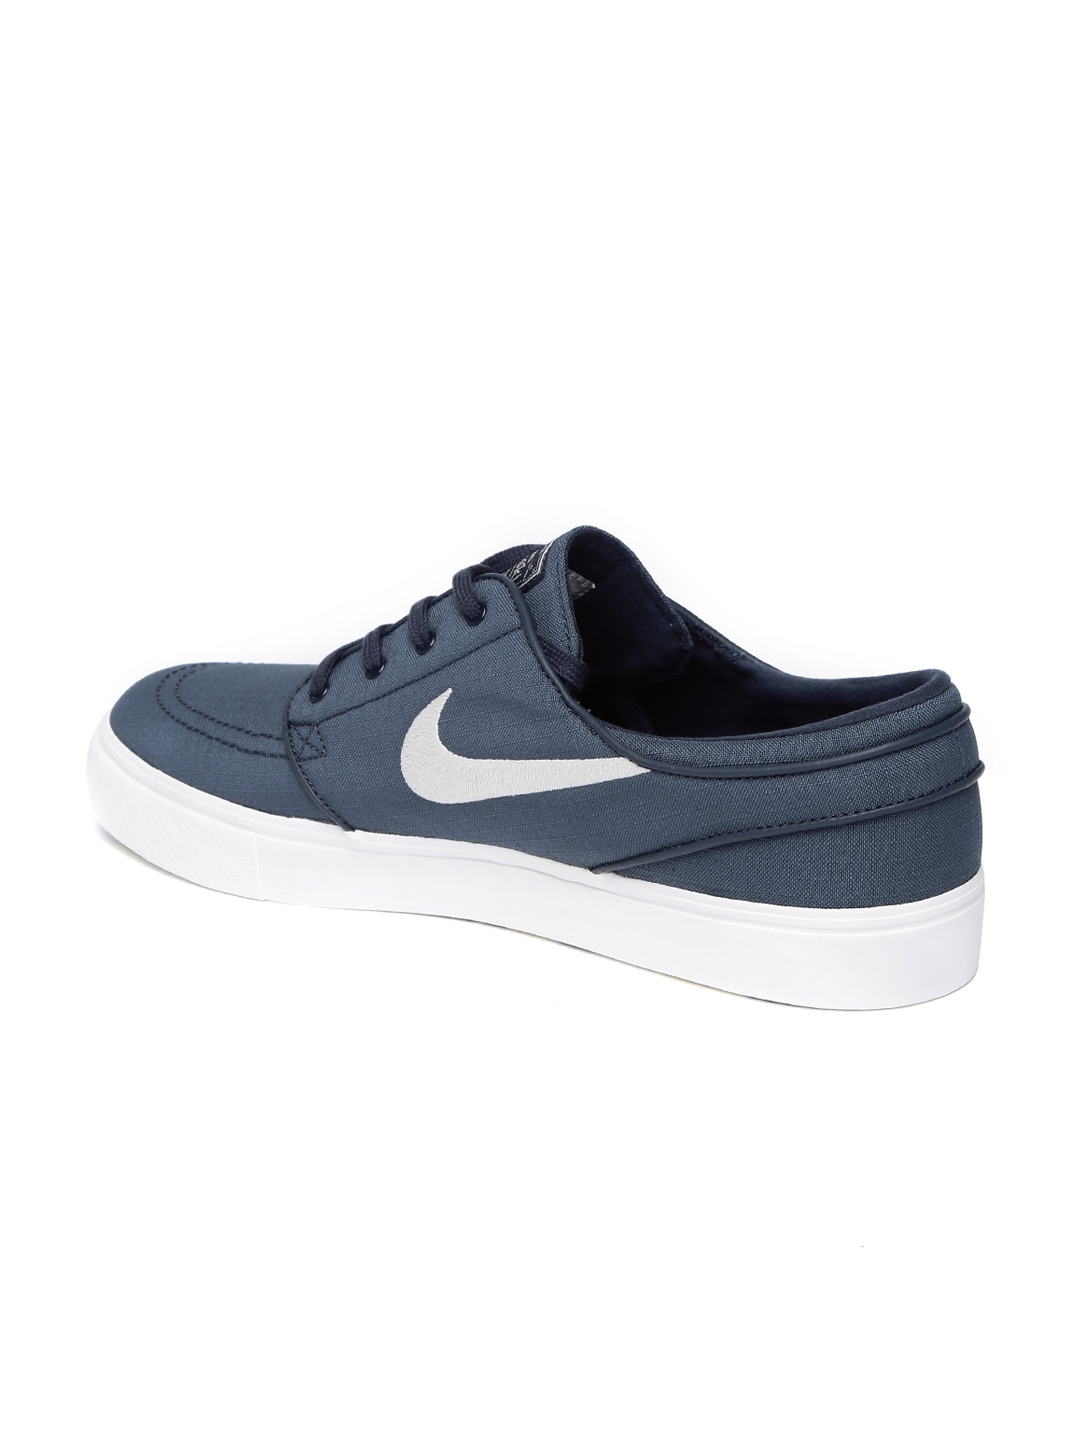 f75186dfc Buy Nike Men Navy Blue ZOOM STEFAN JANOSKI Skate Shoes - Casual ...